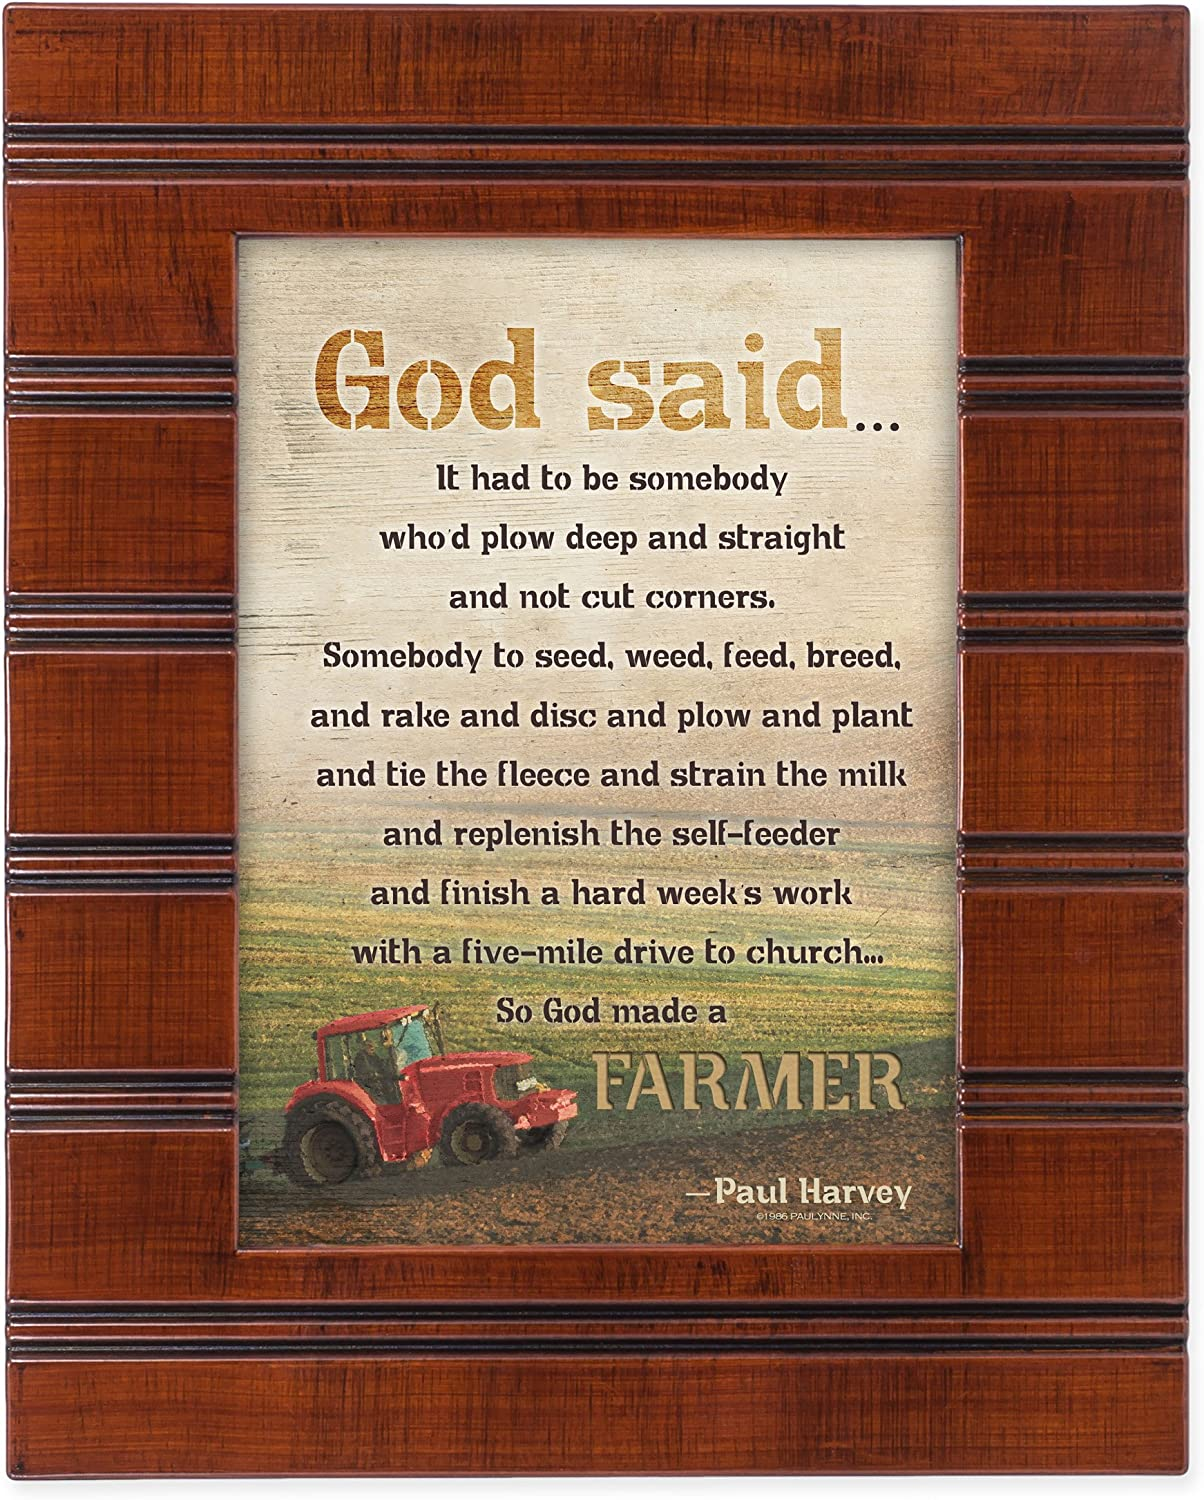 So God Made a Farmer Red Tractor Wood Finish 8 x 10 Sentimental Framed Art Plaque - Holds 5x7 Photo